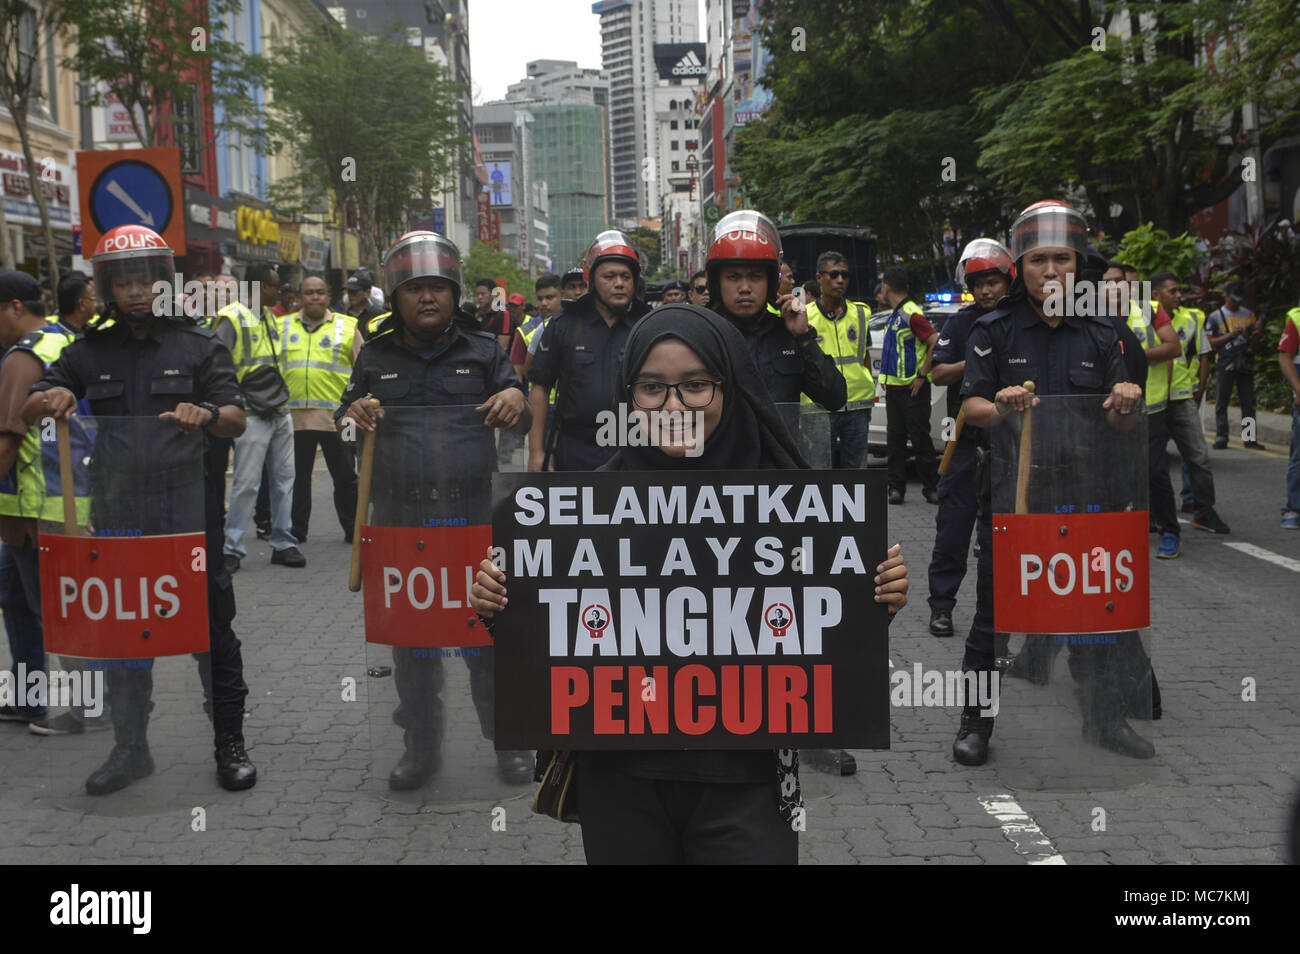 Kuala Lumpur Malaysia 14th Apr 2018 A Girl Holds A Placard During A Nab A Thief Jho Low Rally In Kuala Lumpur The Rally Is Being Held To Call For The